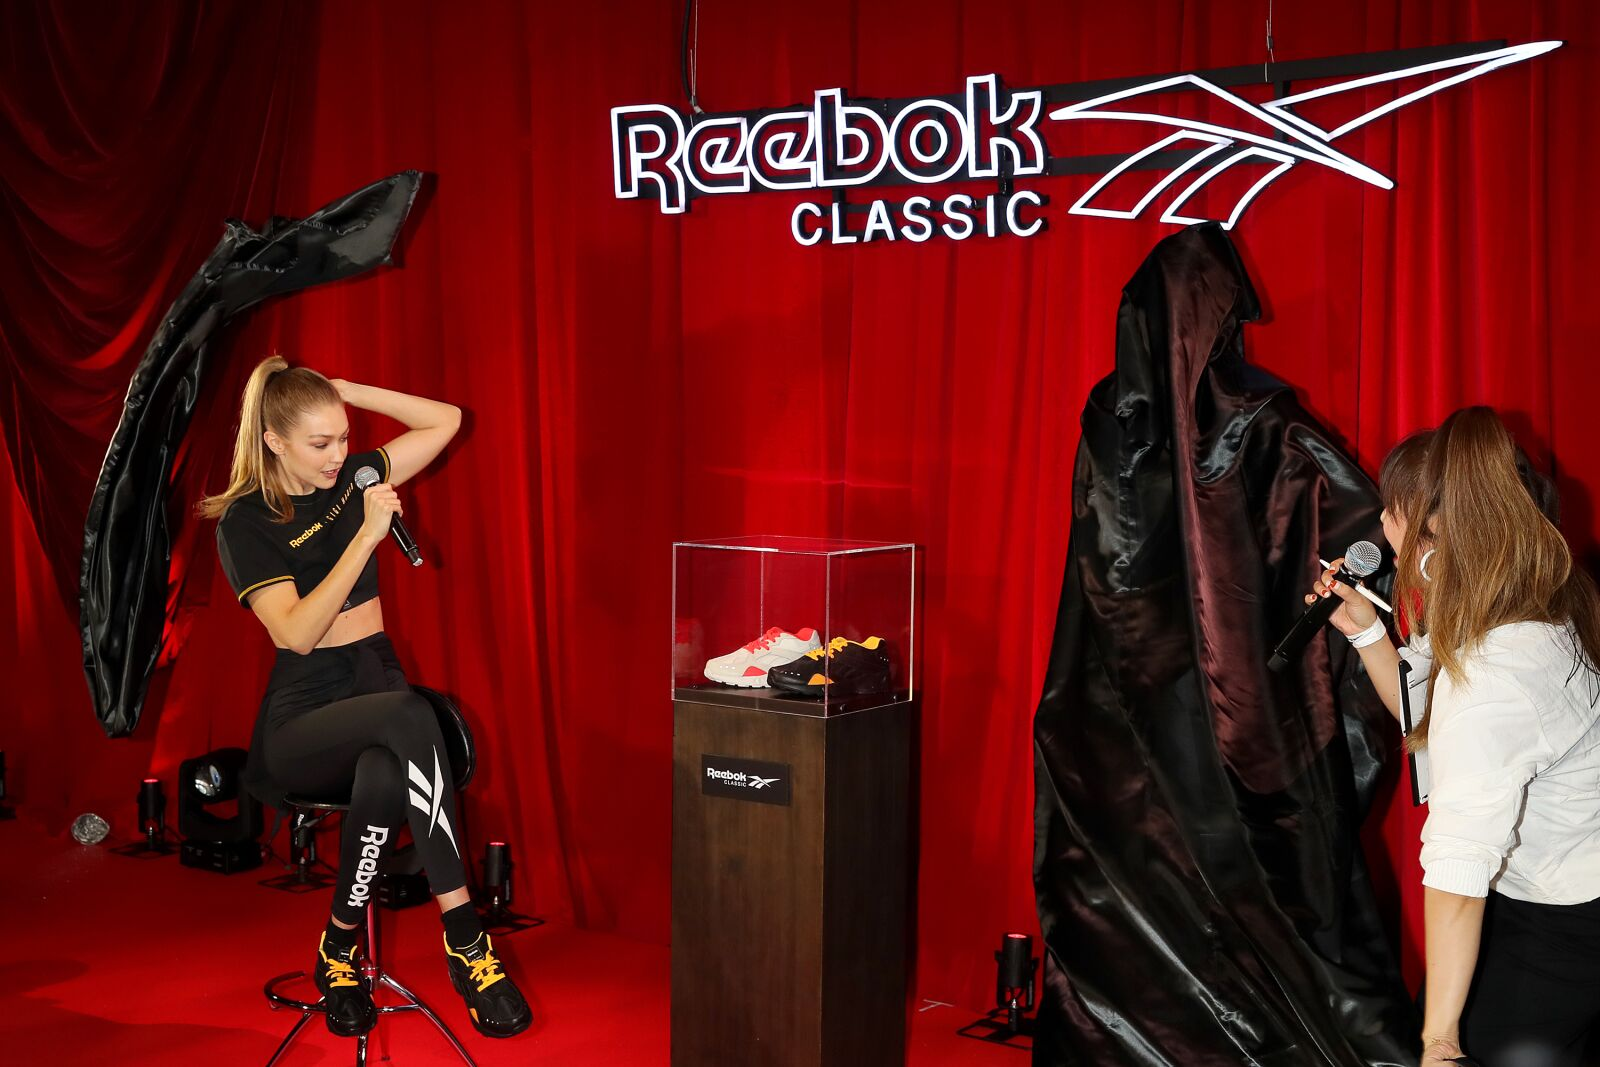 Reebok chose a weird way to celebrate womanhood for new collection